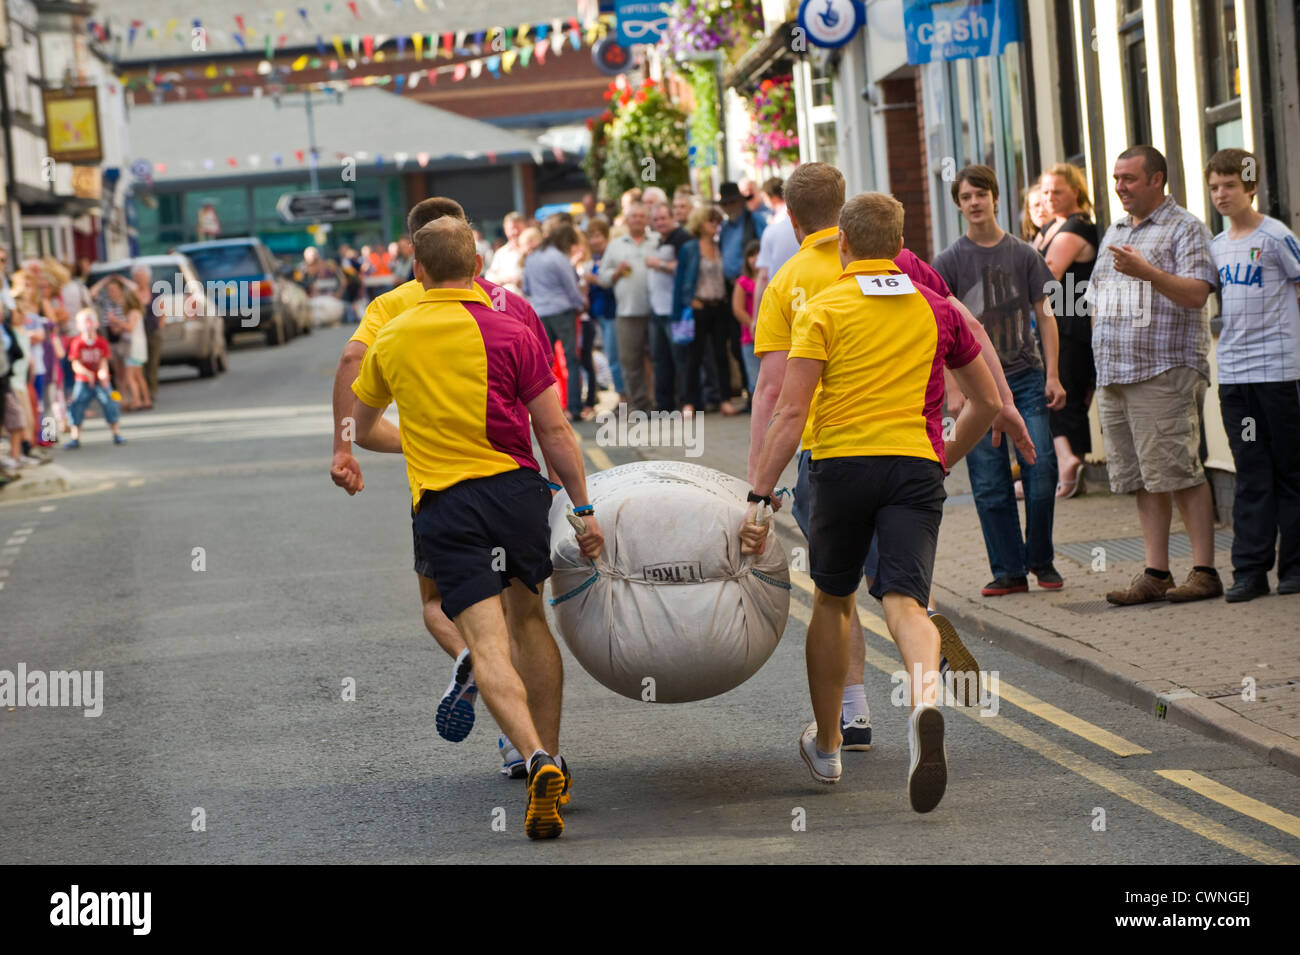 Local men's team taking part in the annual World Championship Hop Pocket Race at Bromyard Herefordshire England - Stock Image